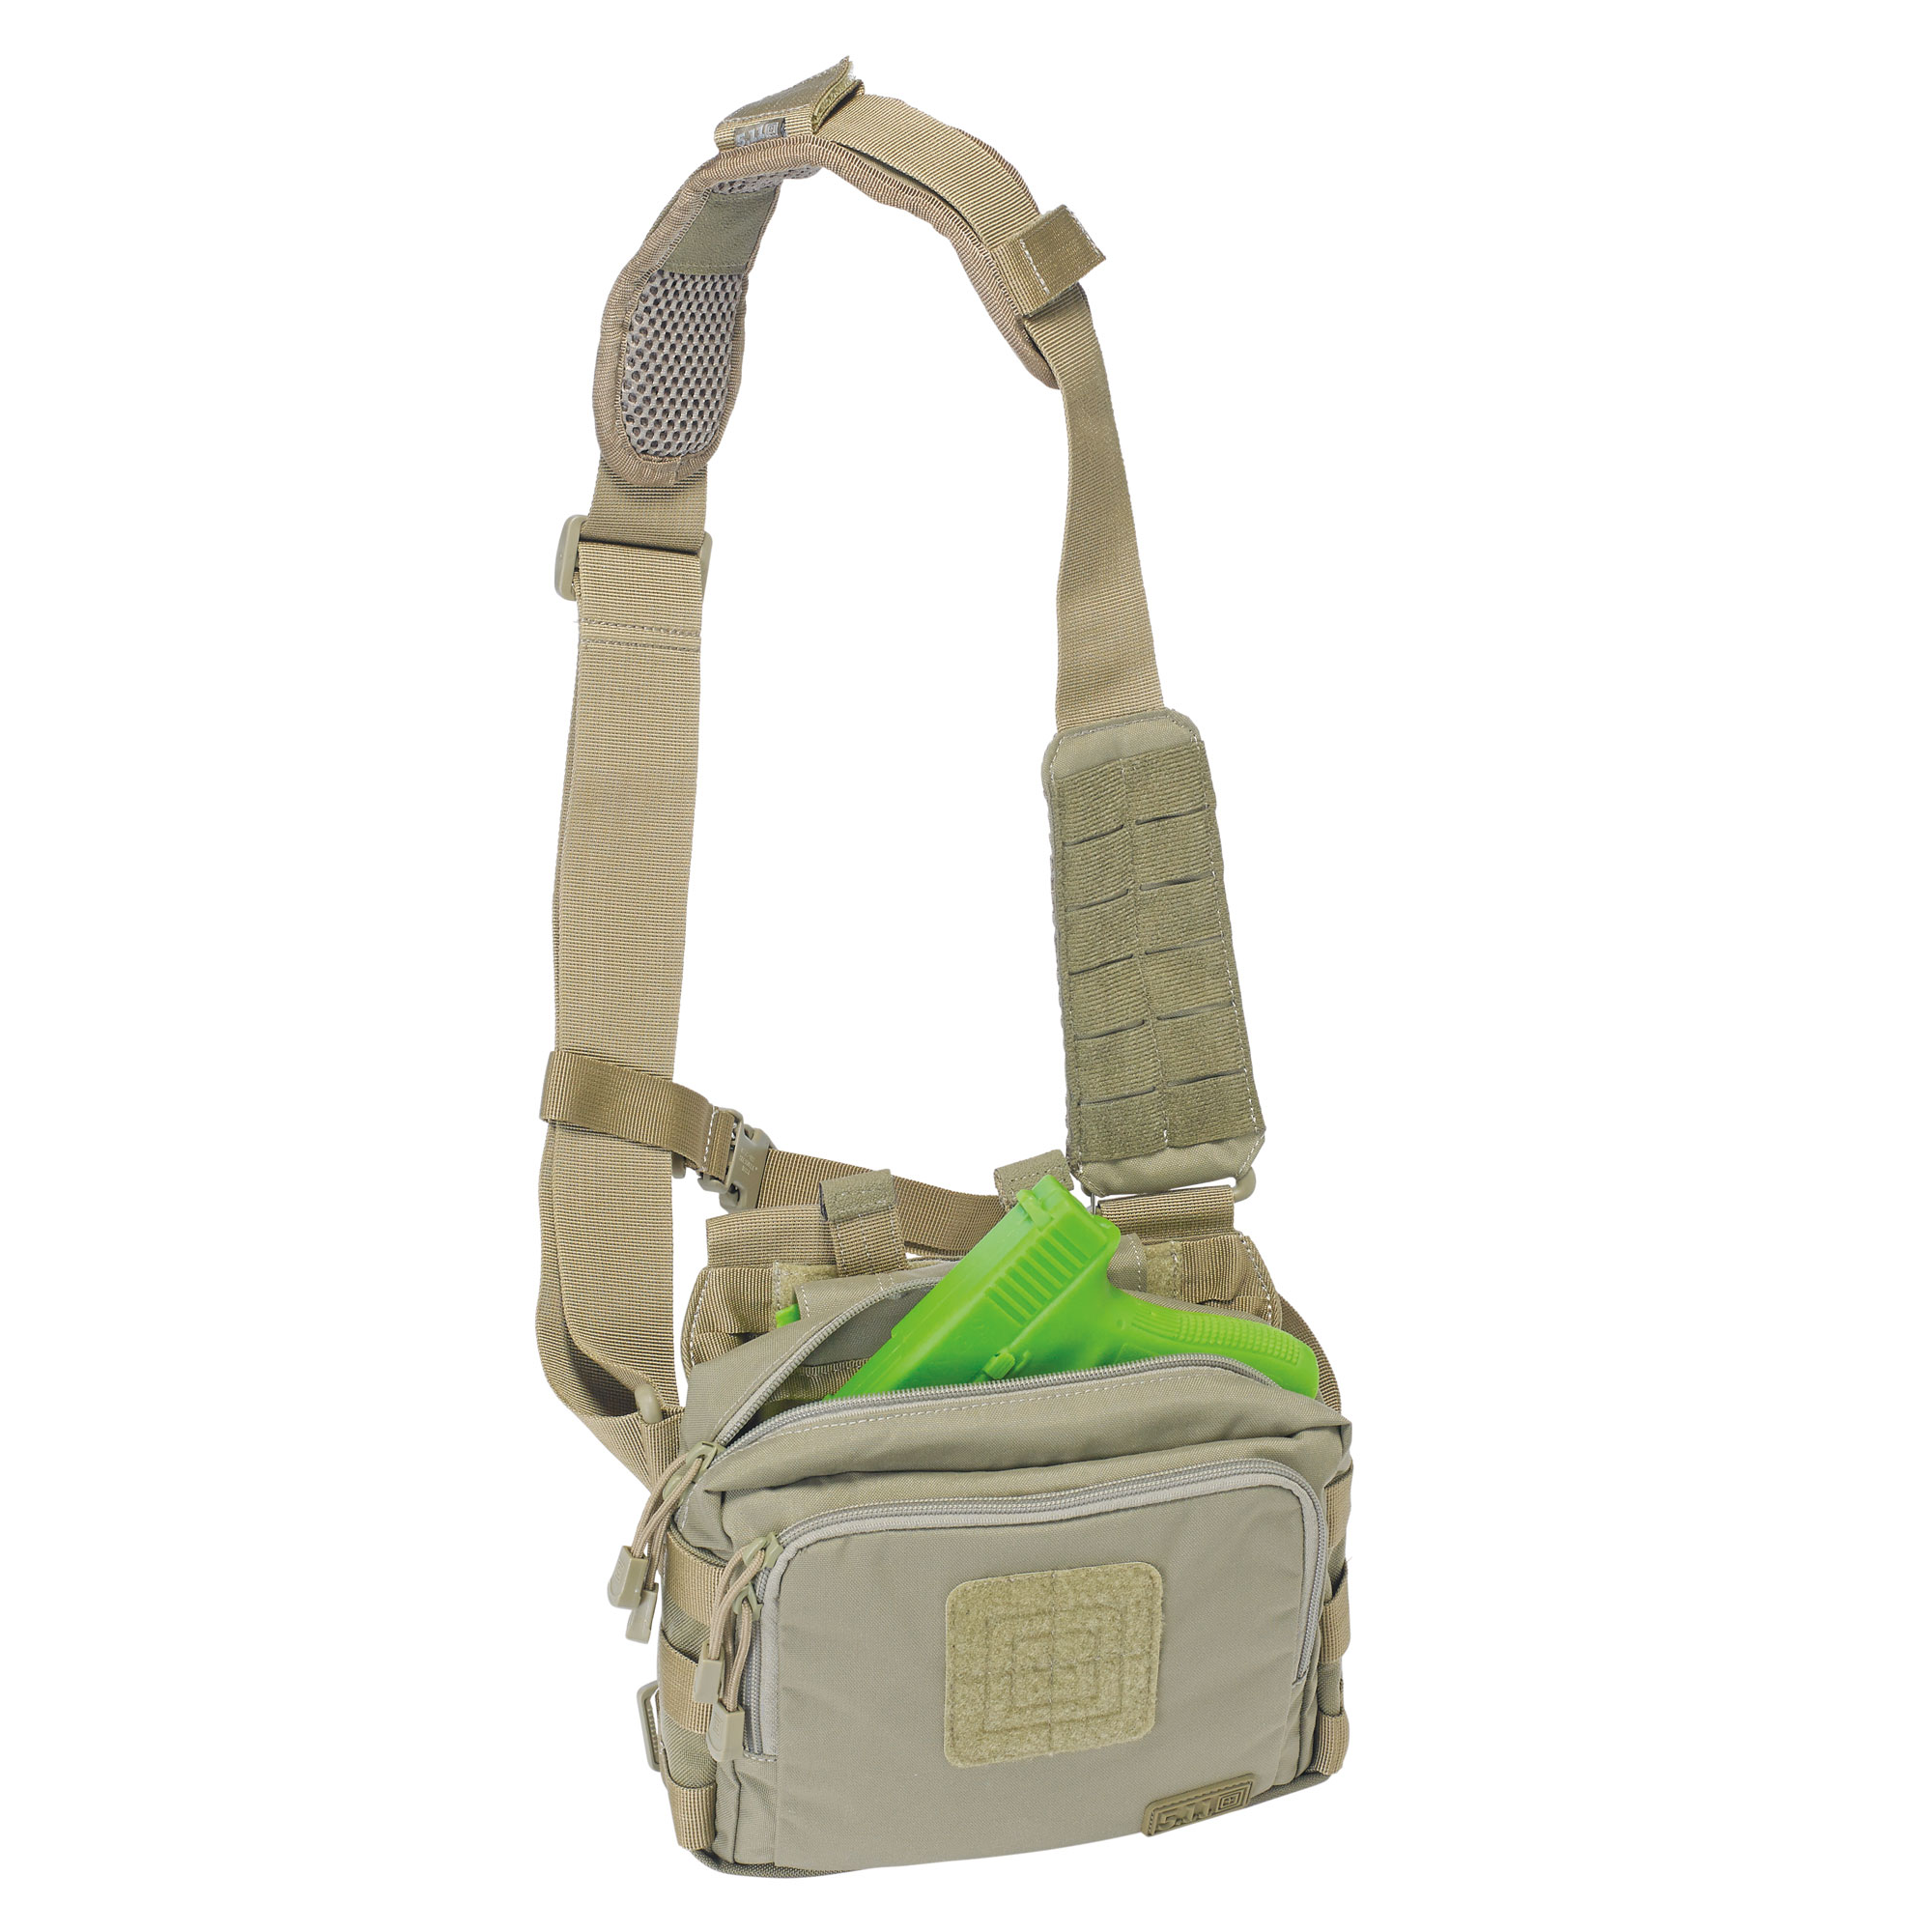 5.11-tactical-2-banger-bag-3.jpg